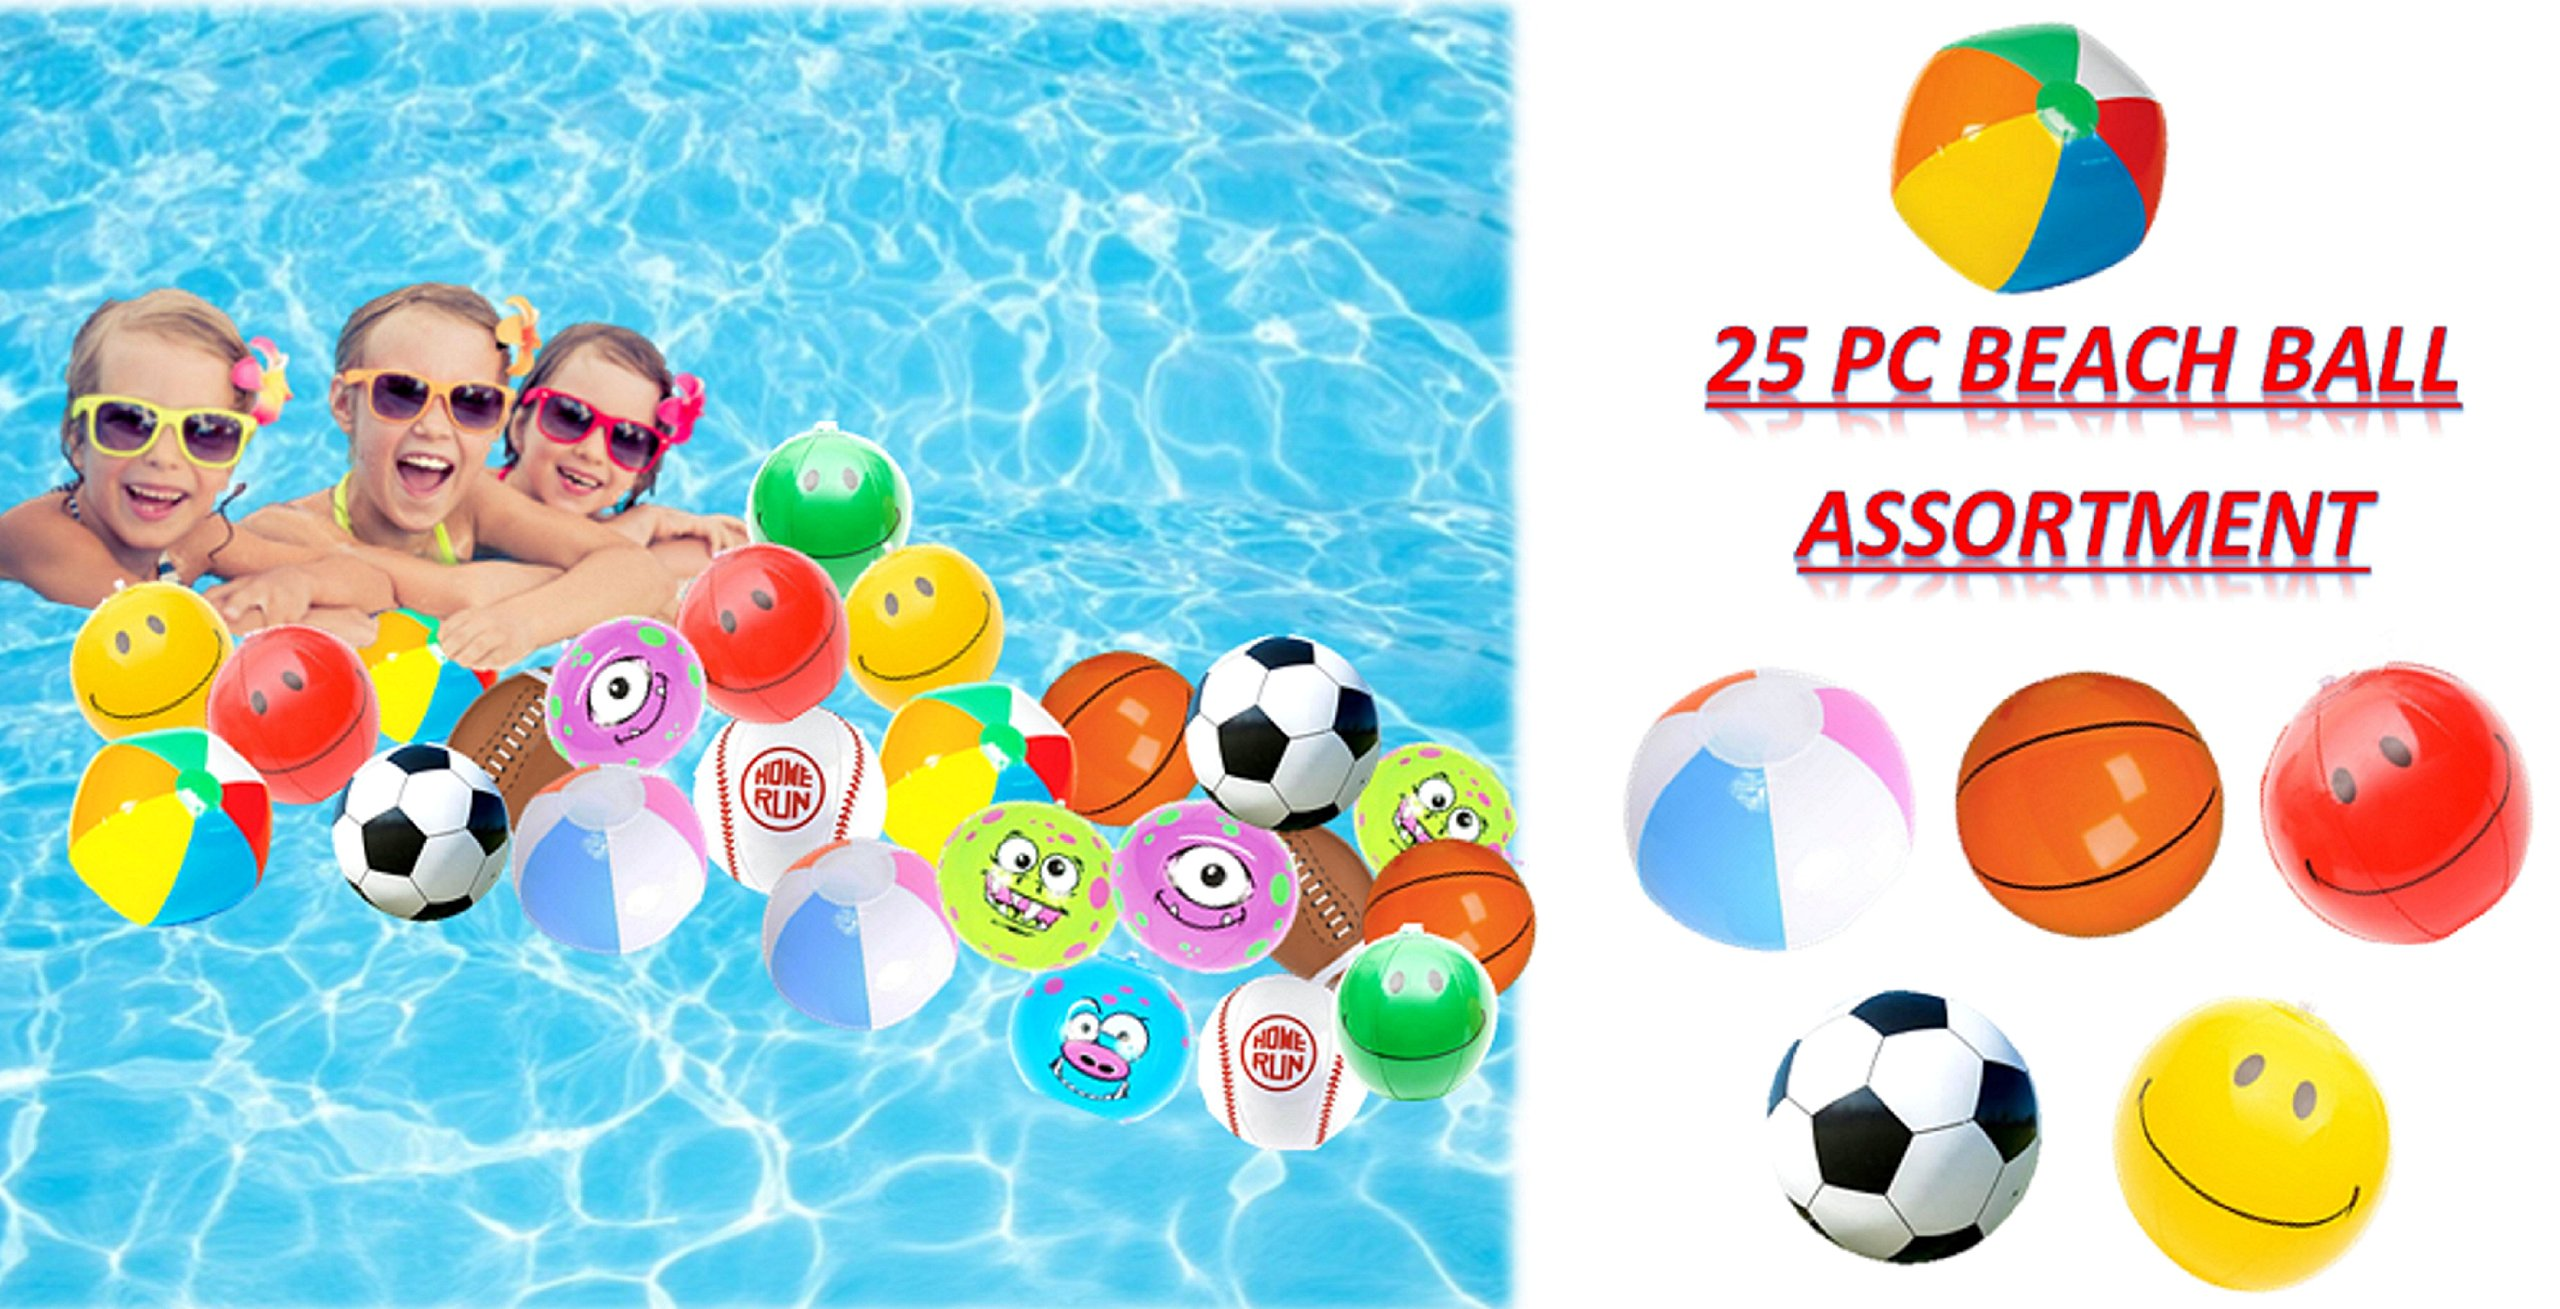 Play Kreative Assorted Mini Beach Balls - 25 Pack - 6'' Inflatable Pool Toys Beachballs Party Favor